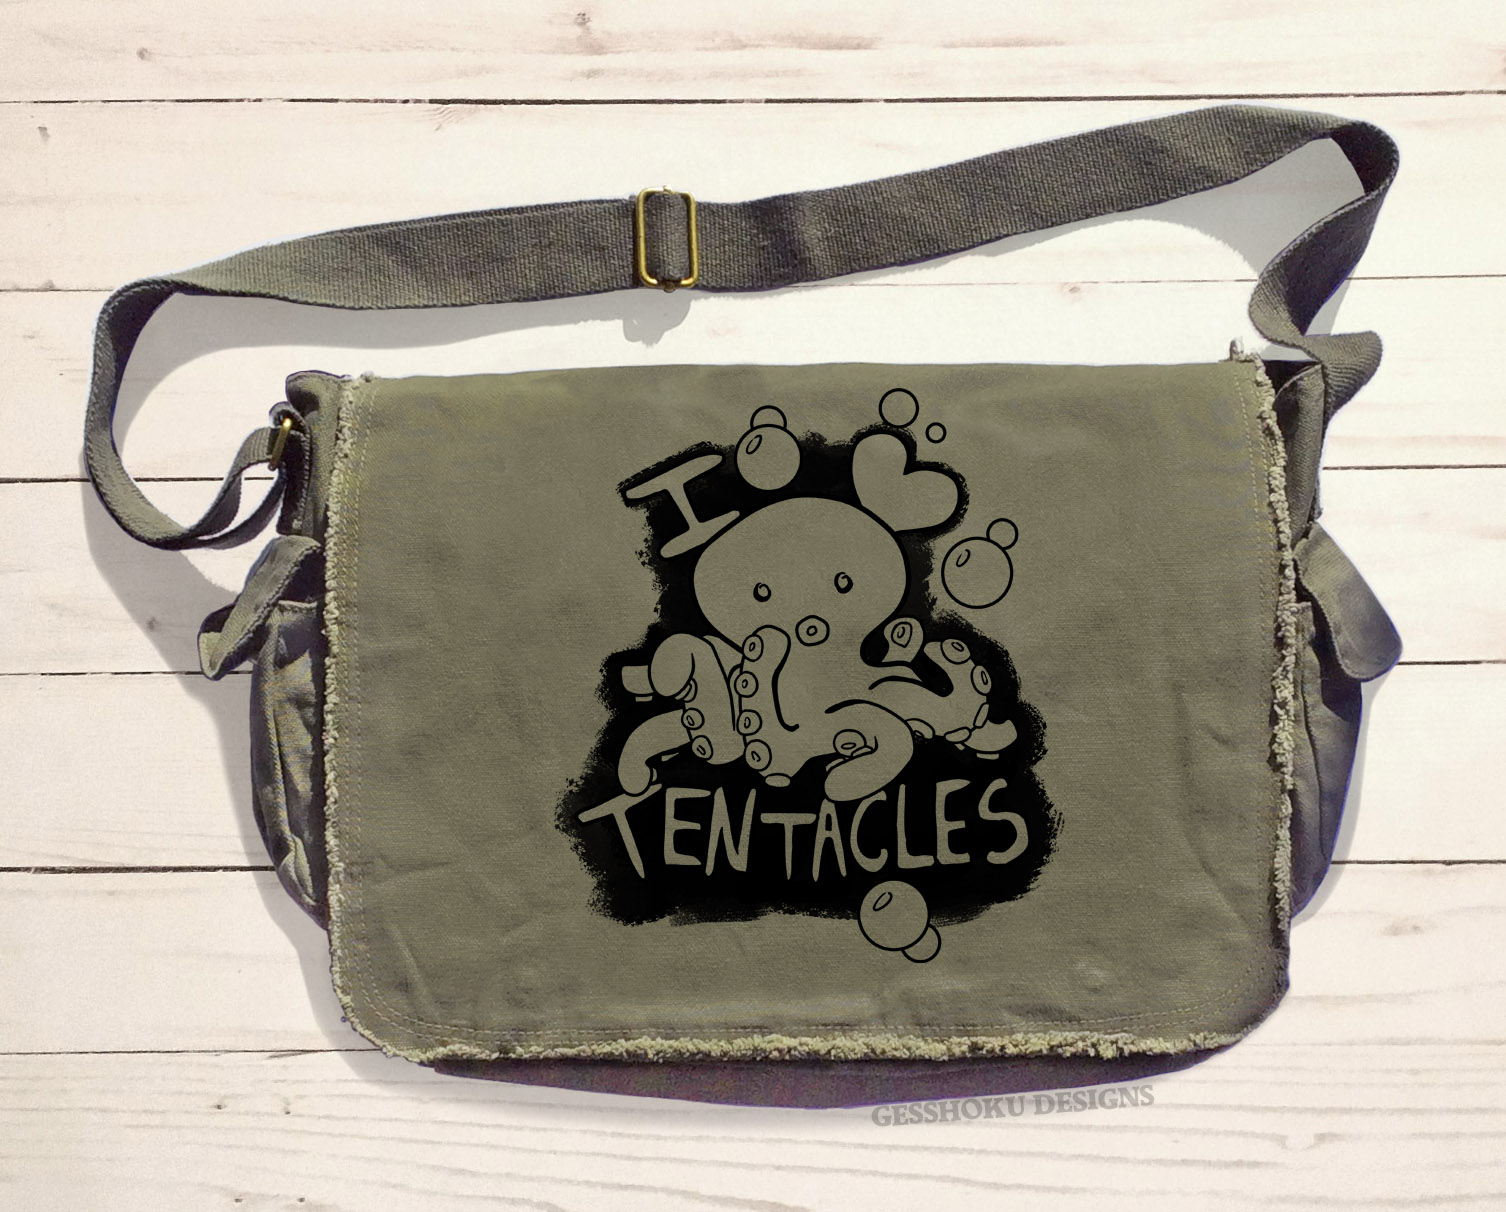 I Love Tentacles Messenger Bag - Khaki Green